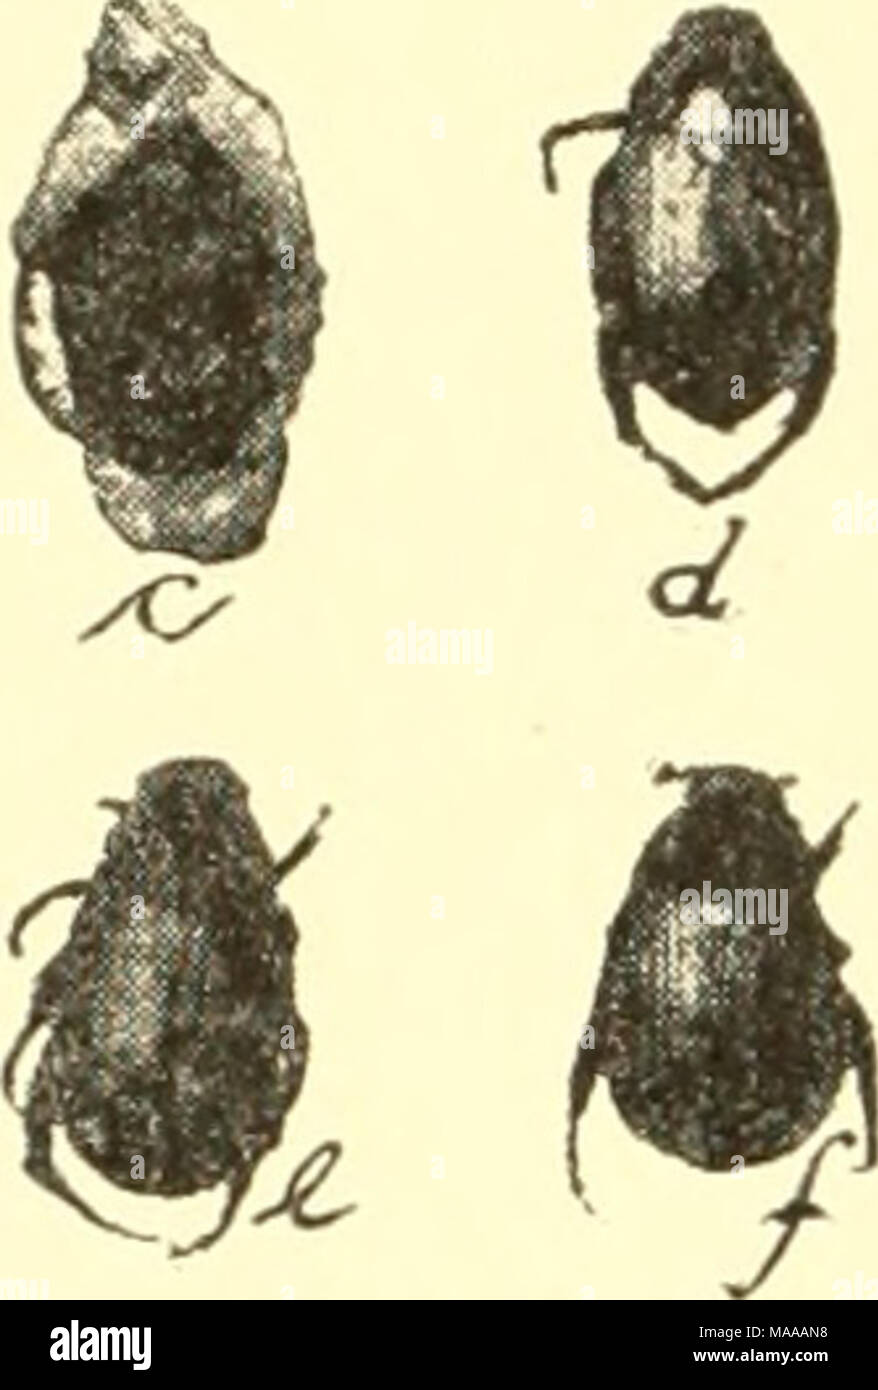 . Economic entomology for the farmer and the fruit grower, and for use as a text-book in agricultural schools and colleges; . Anomala lucicola.— a, b, larva ; c, pupa in larval skin ; </, e,f, adult beetles. - Stock Image